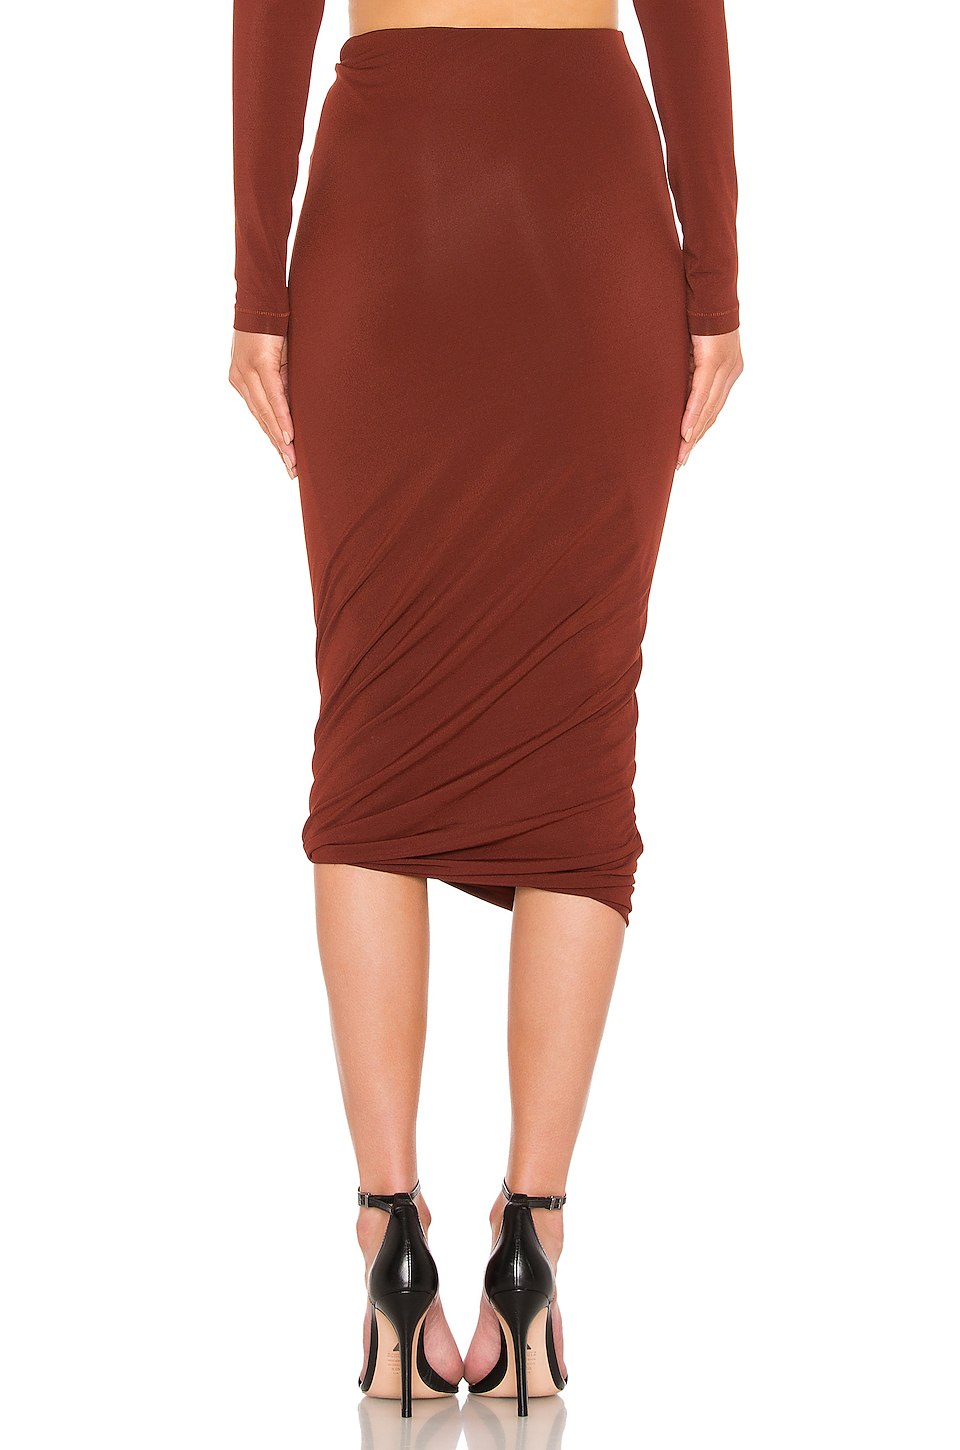 ff0522e804197 Buy Original T by Alexander Wang Crepe Jersey Twisted Skirt at ...